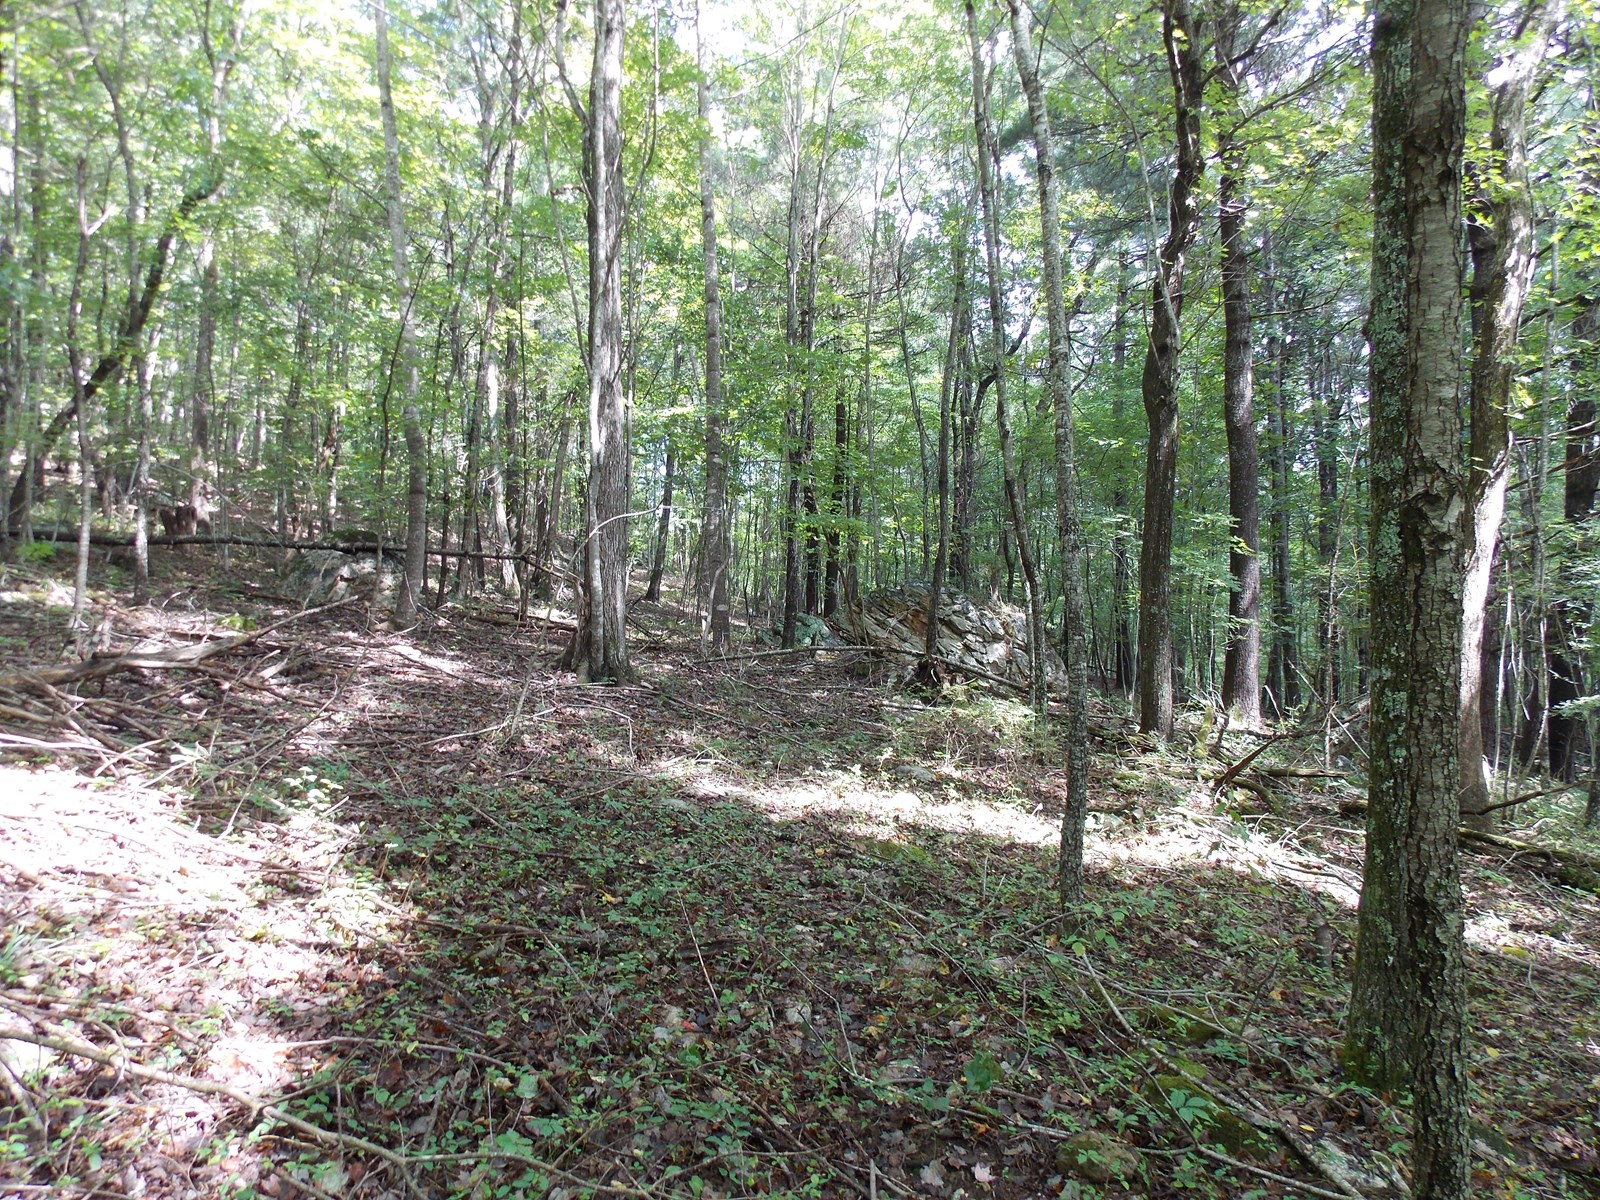 Land for Sale in Riner VA